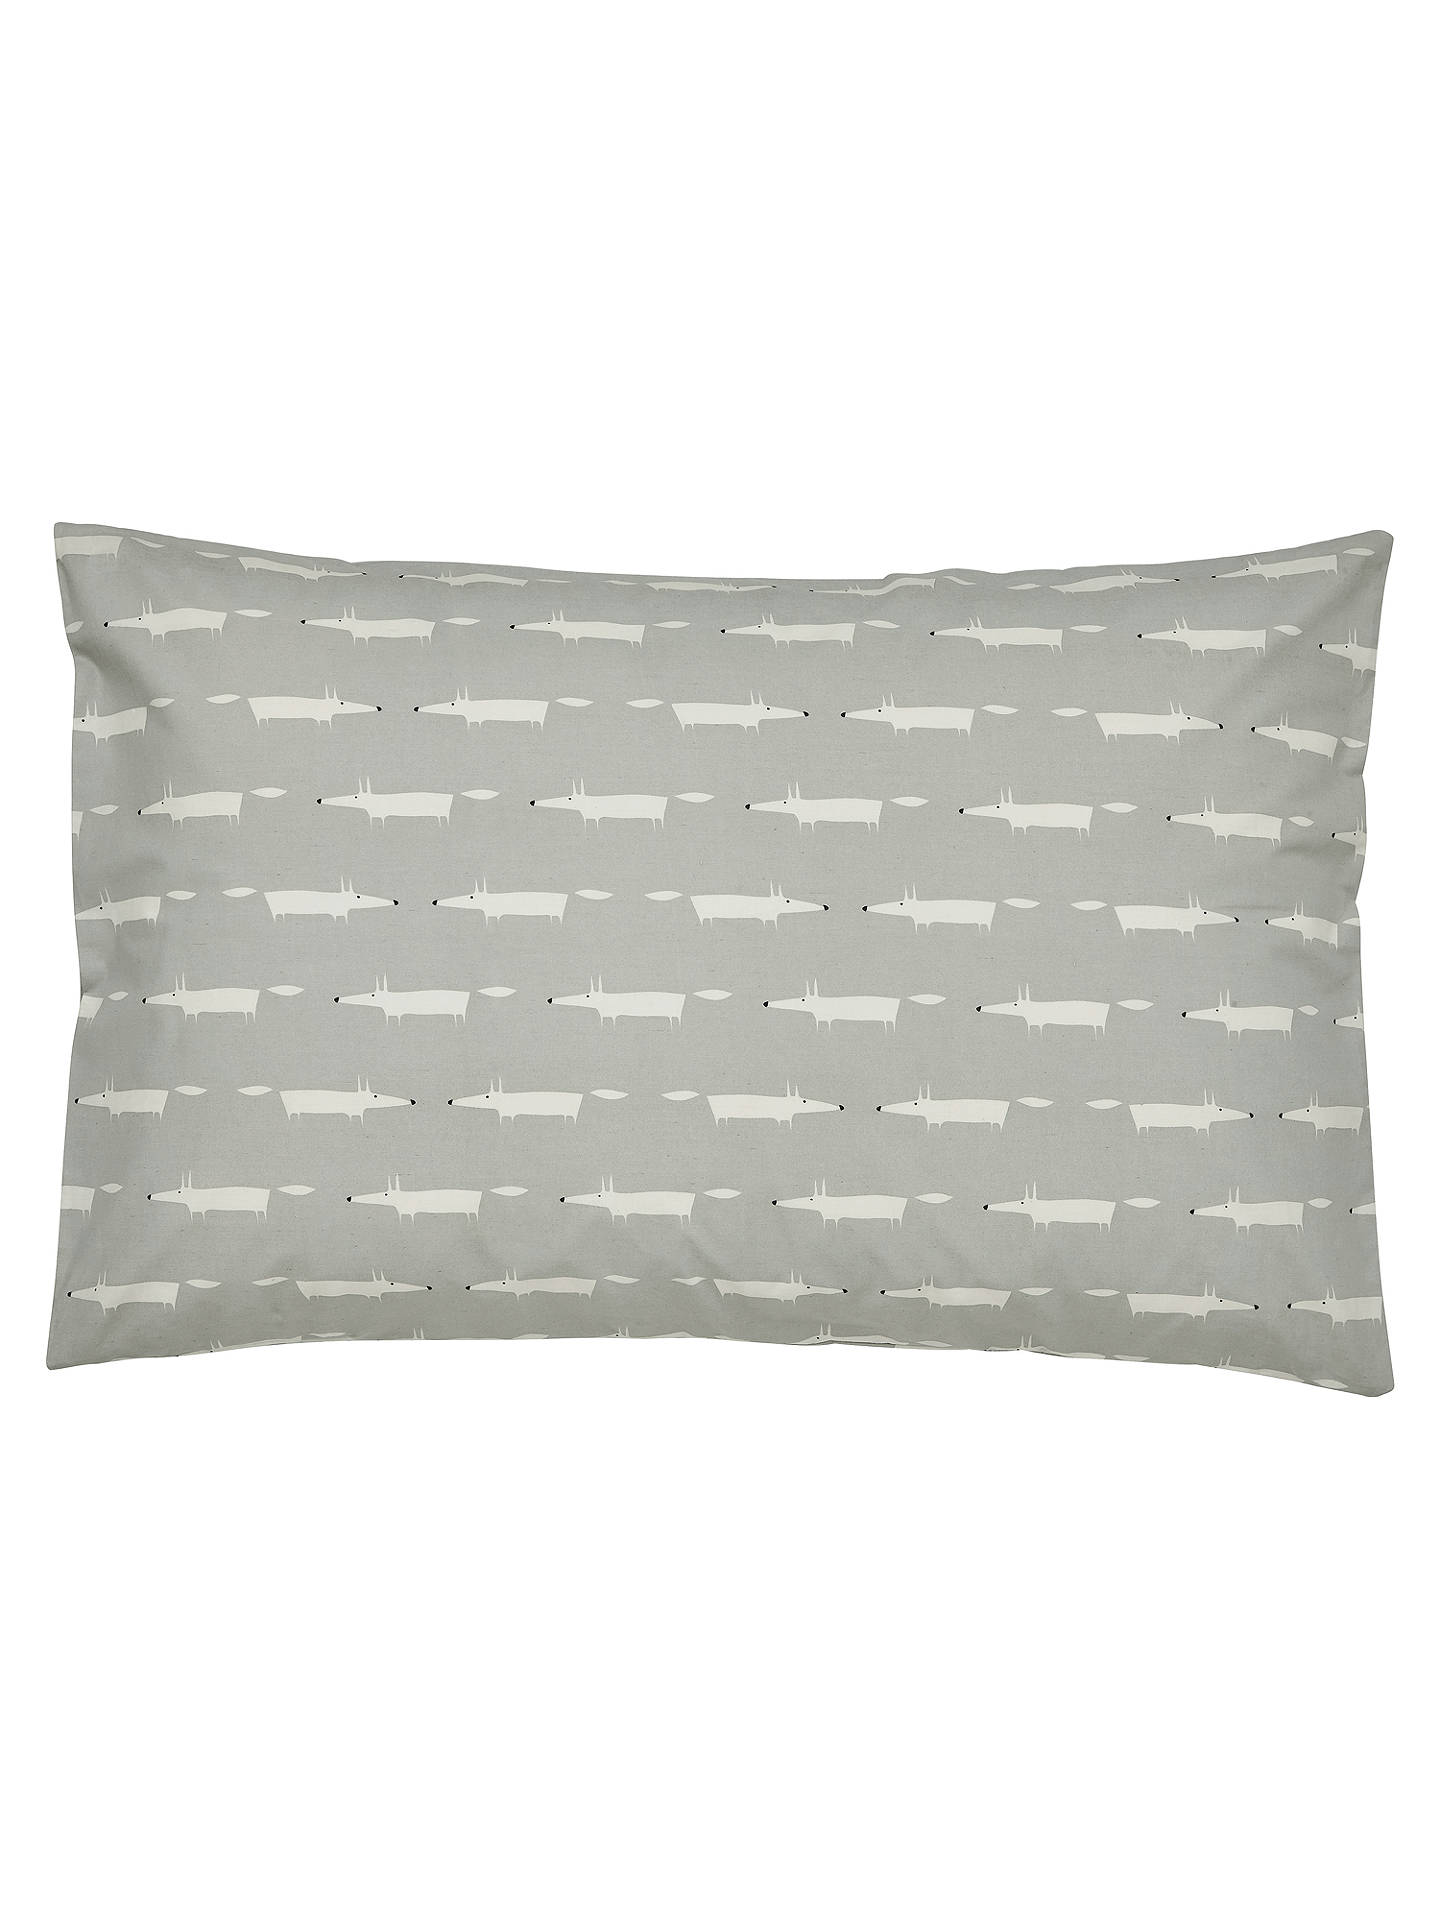 Buy Scion Mr Fox Cotton Standard Pillowcase Pair, Silver Online at johnlewis.com